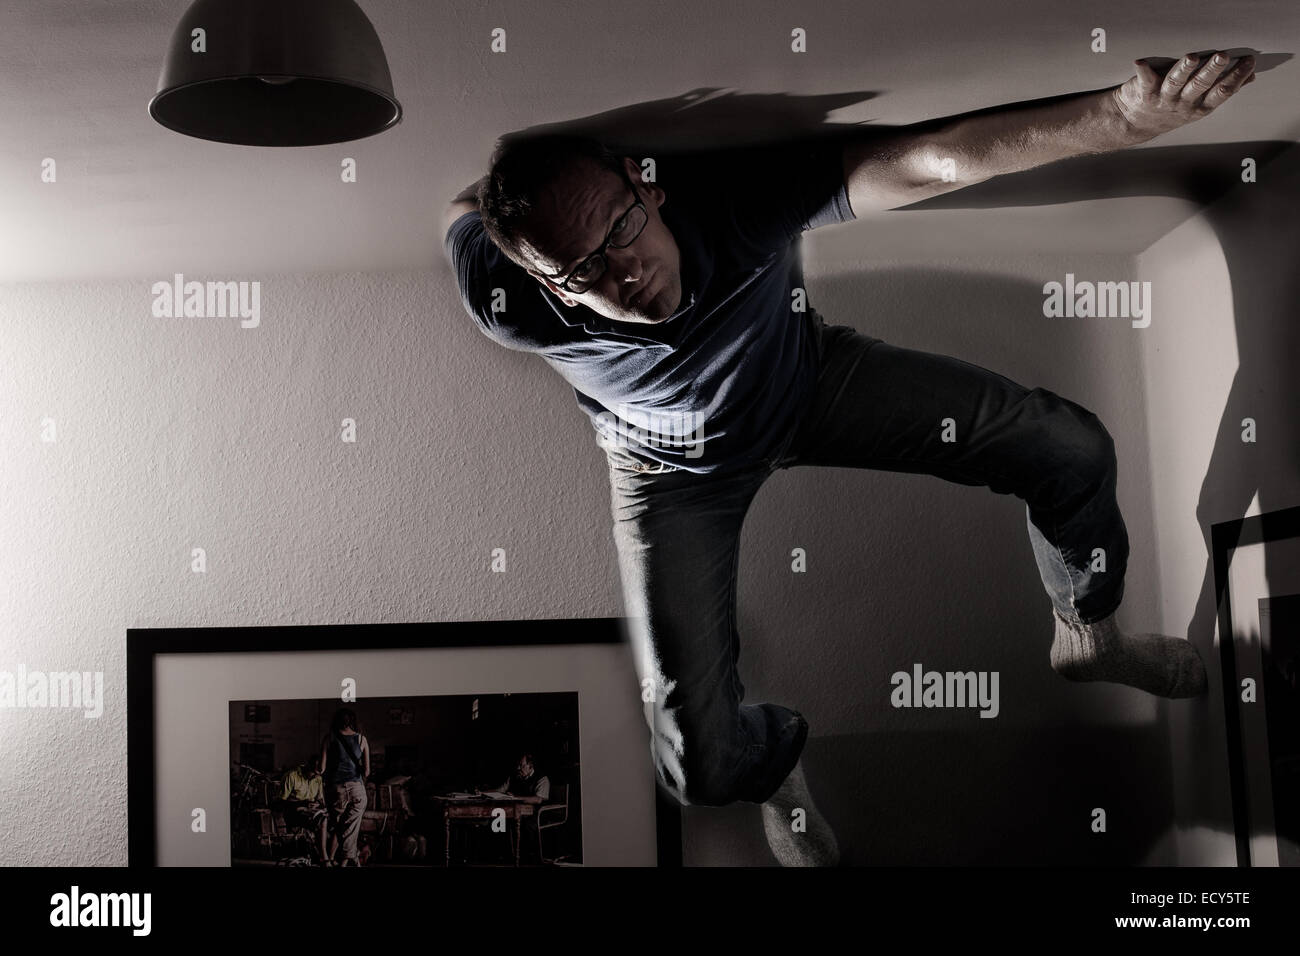 Man climbing along the ceiling. - Stock Image